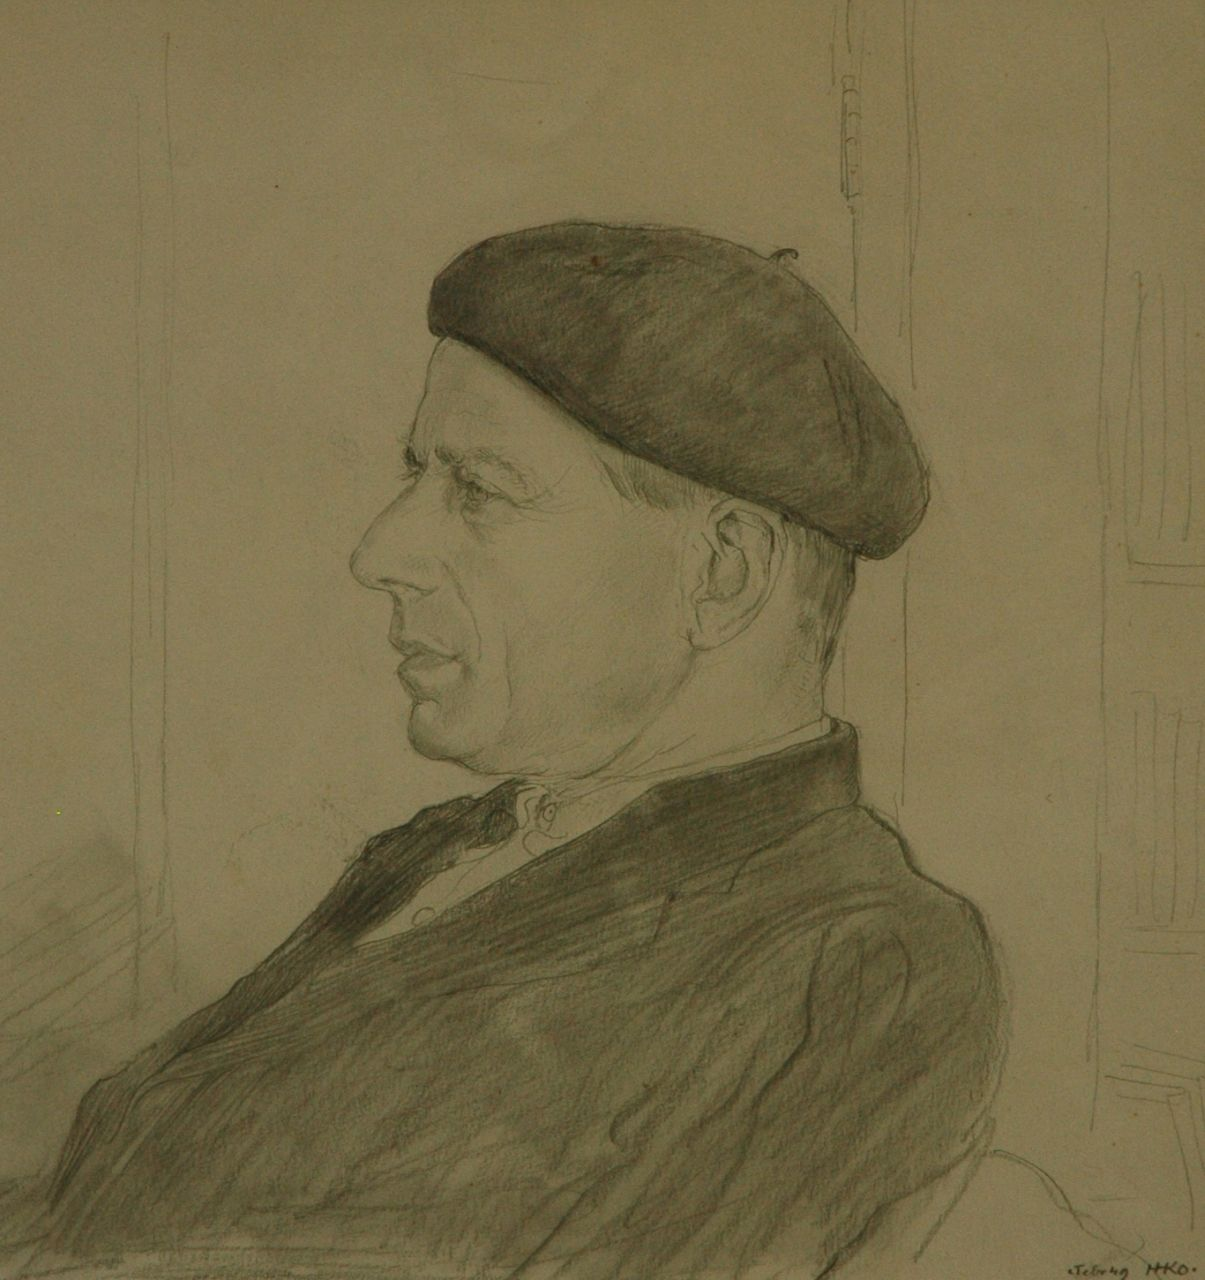 Kamerlingh Onnes H.H.  | 'Harm' Henrick Kamerlingh Onnes, A portrait of Paul Citroen, 1949, pencil on paper 28.5 x 28.0 cm, signed l.r. with monogram and Dated [2?] Febr '49